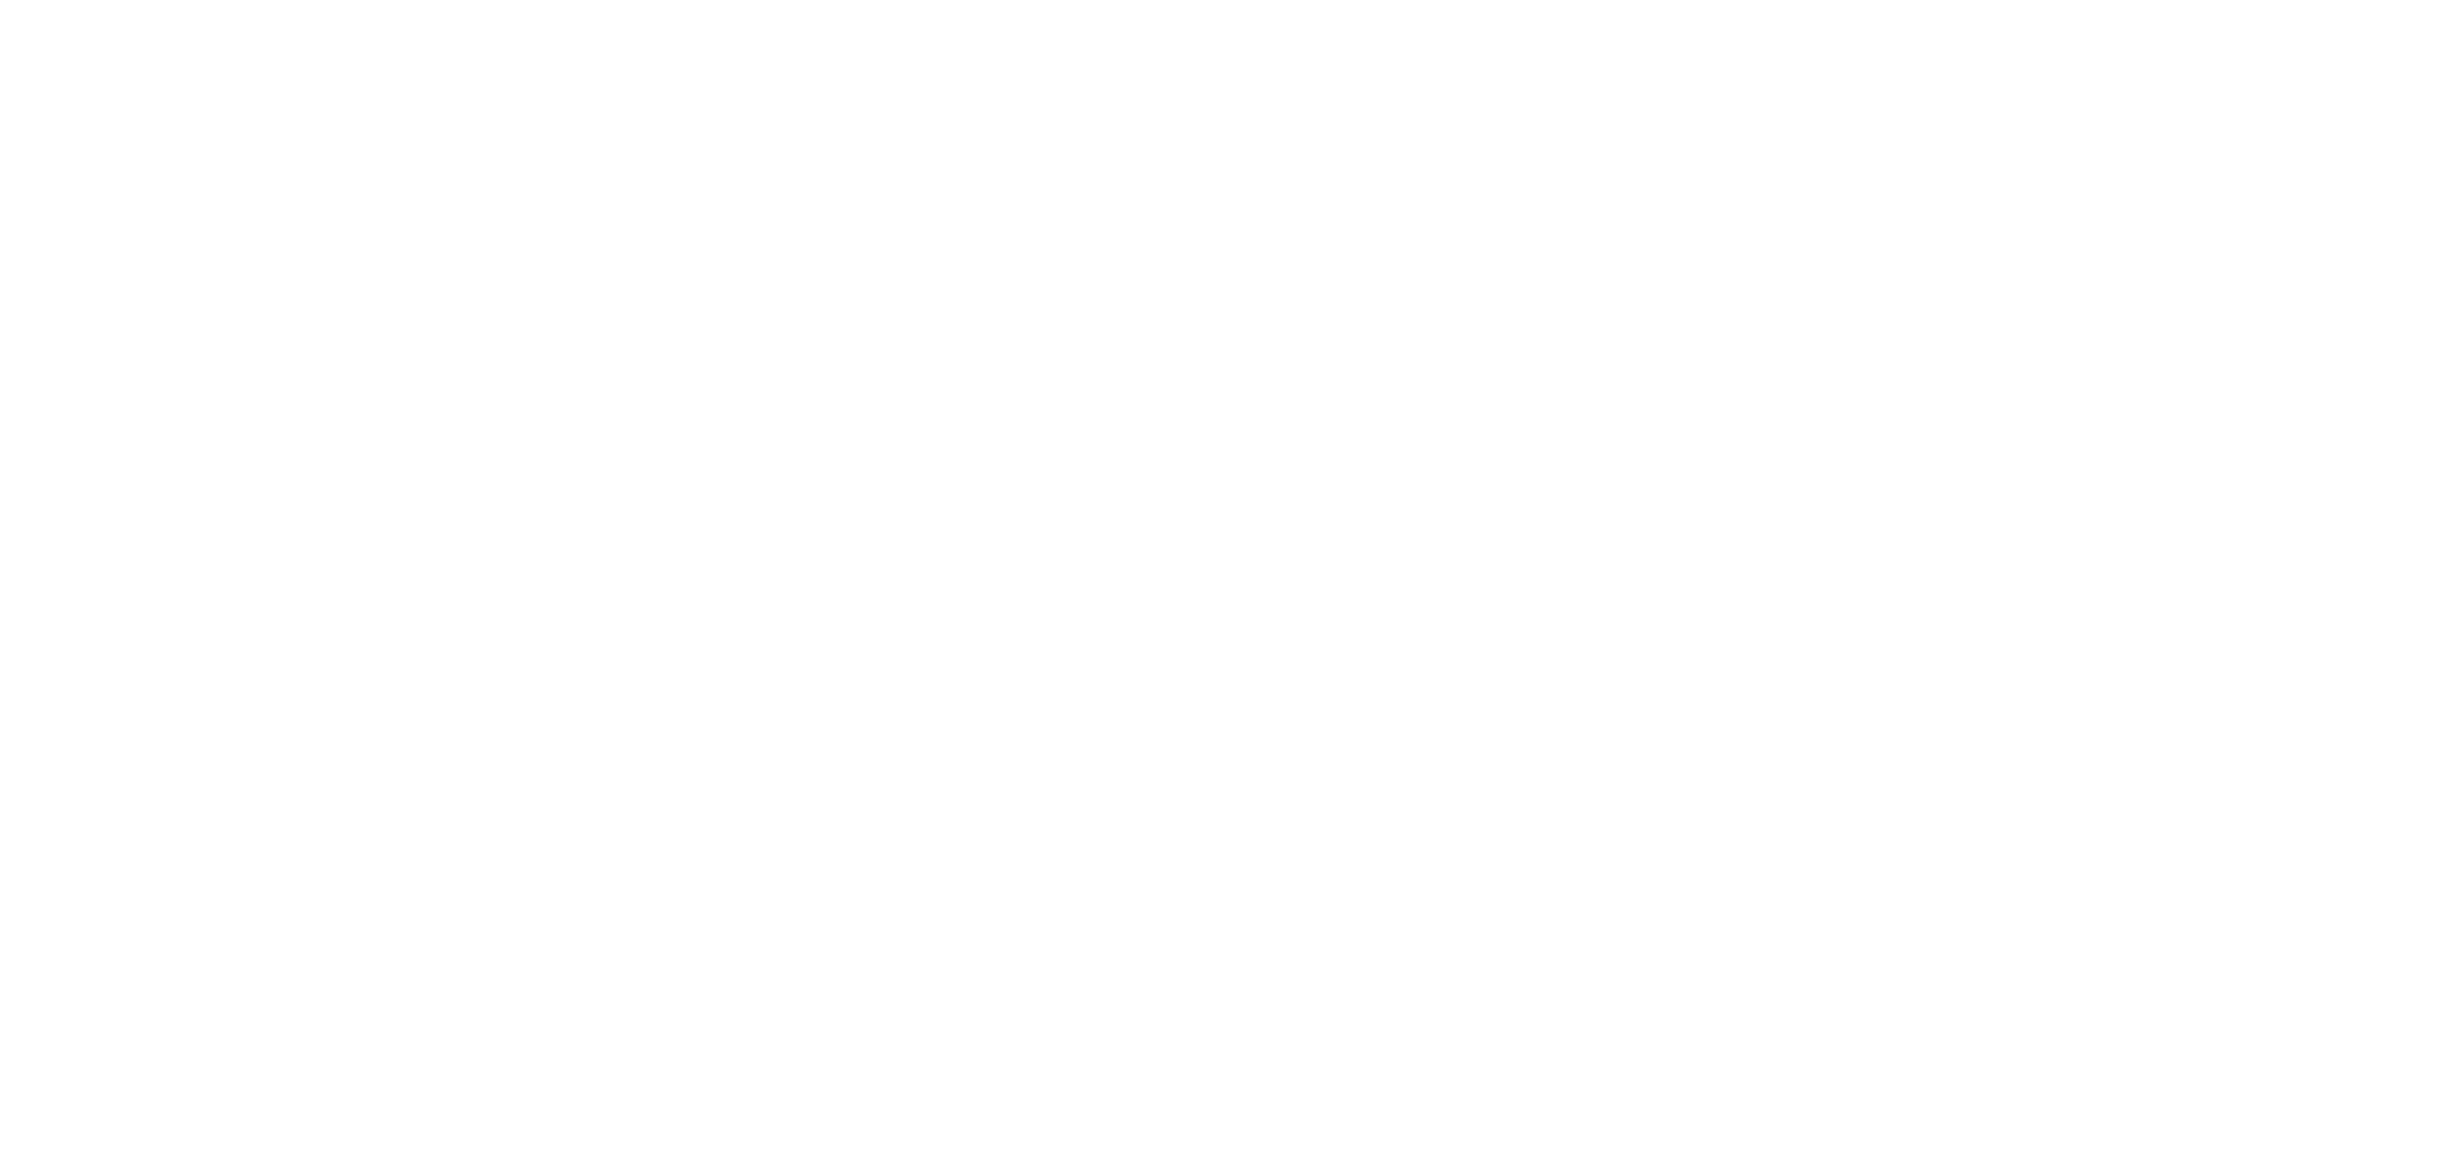 CK Productions | Audium | Audiovisuele producties en verhuur op broadcastmarkt Ranst